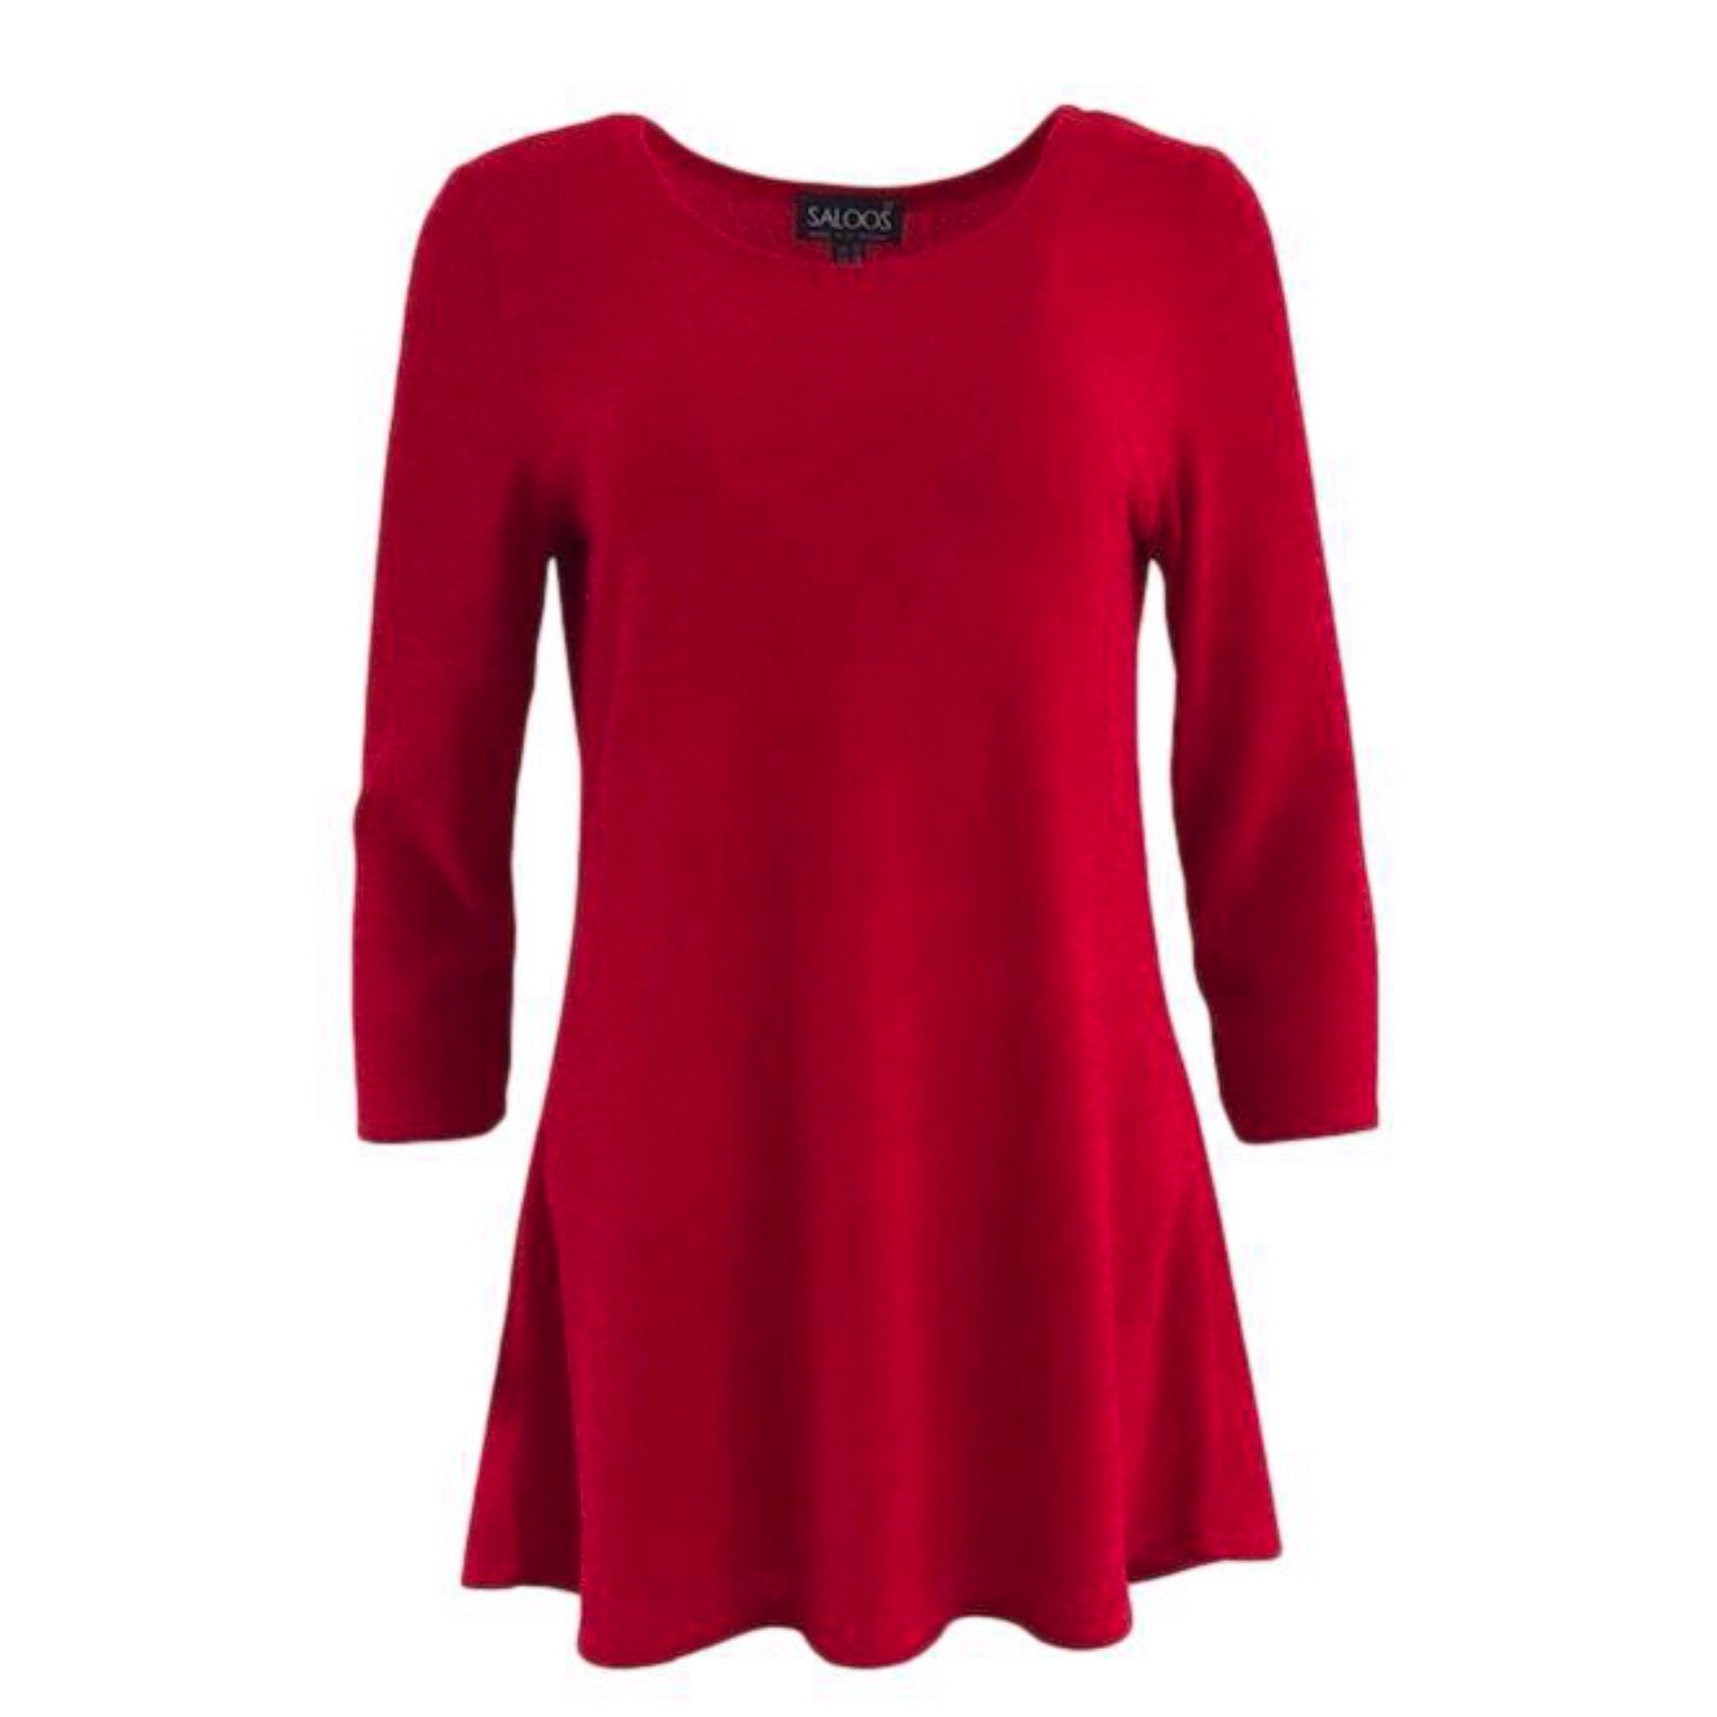 Saloos Red Knitted Tunic Top